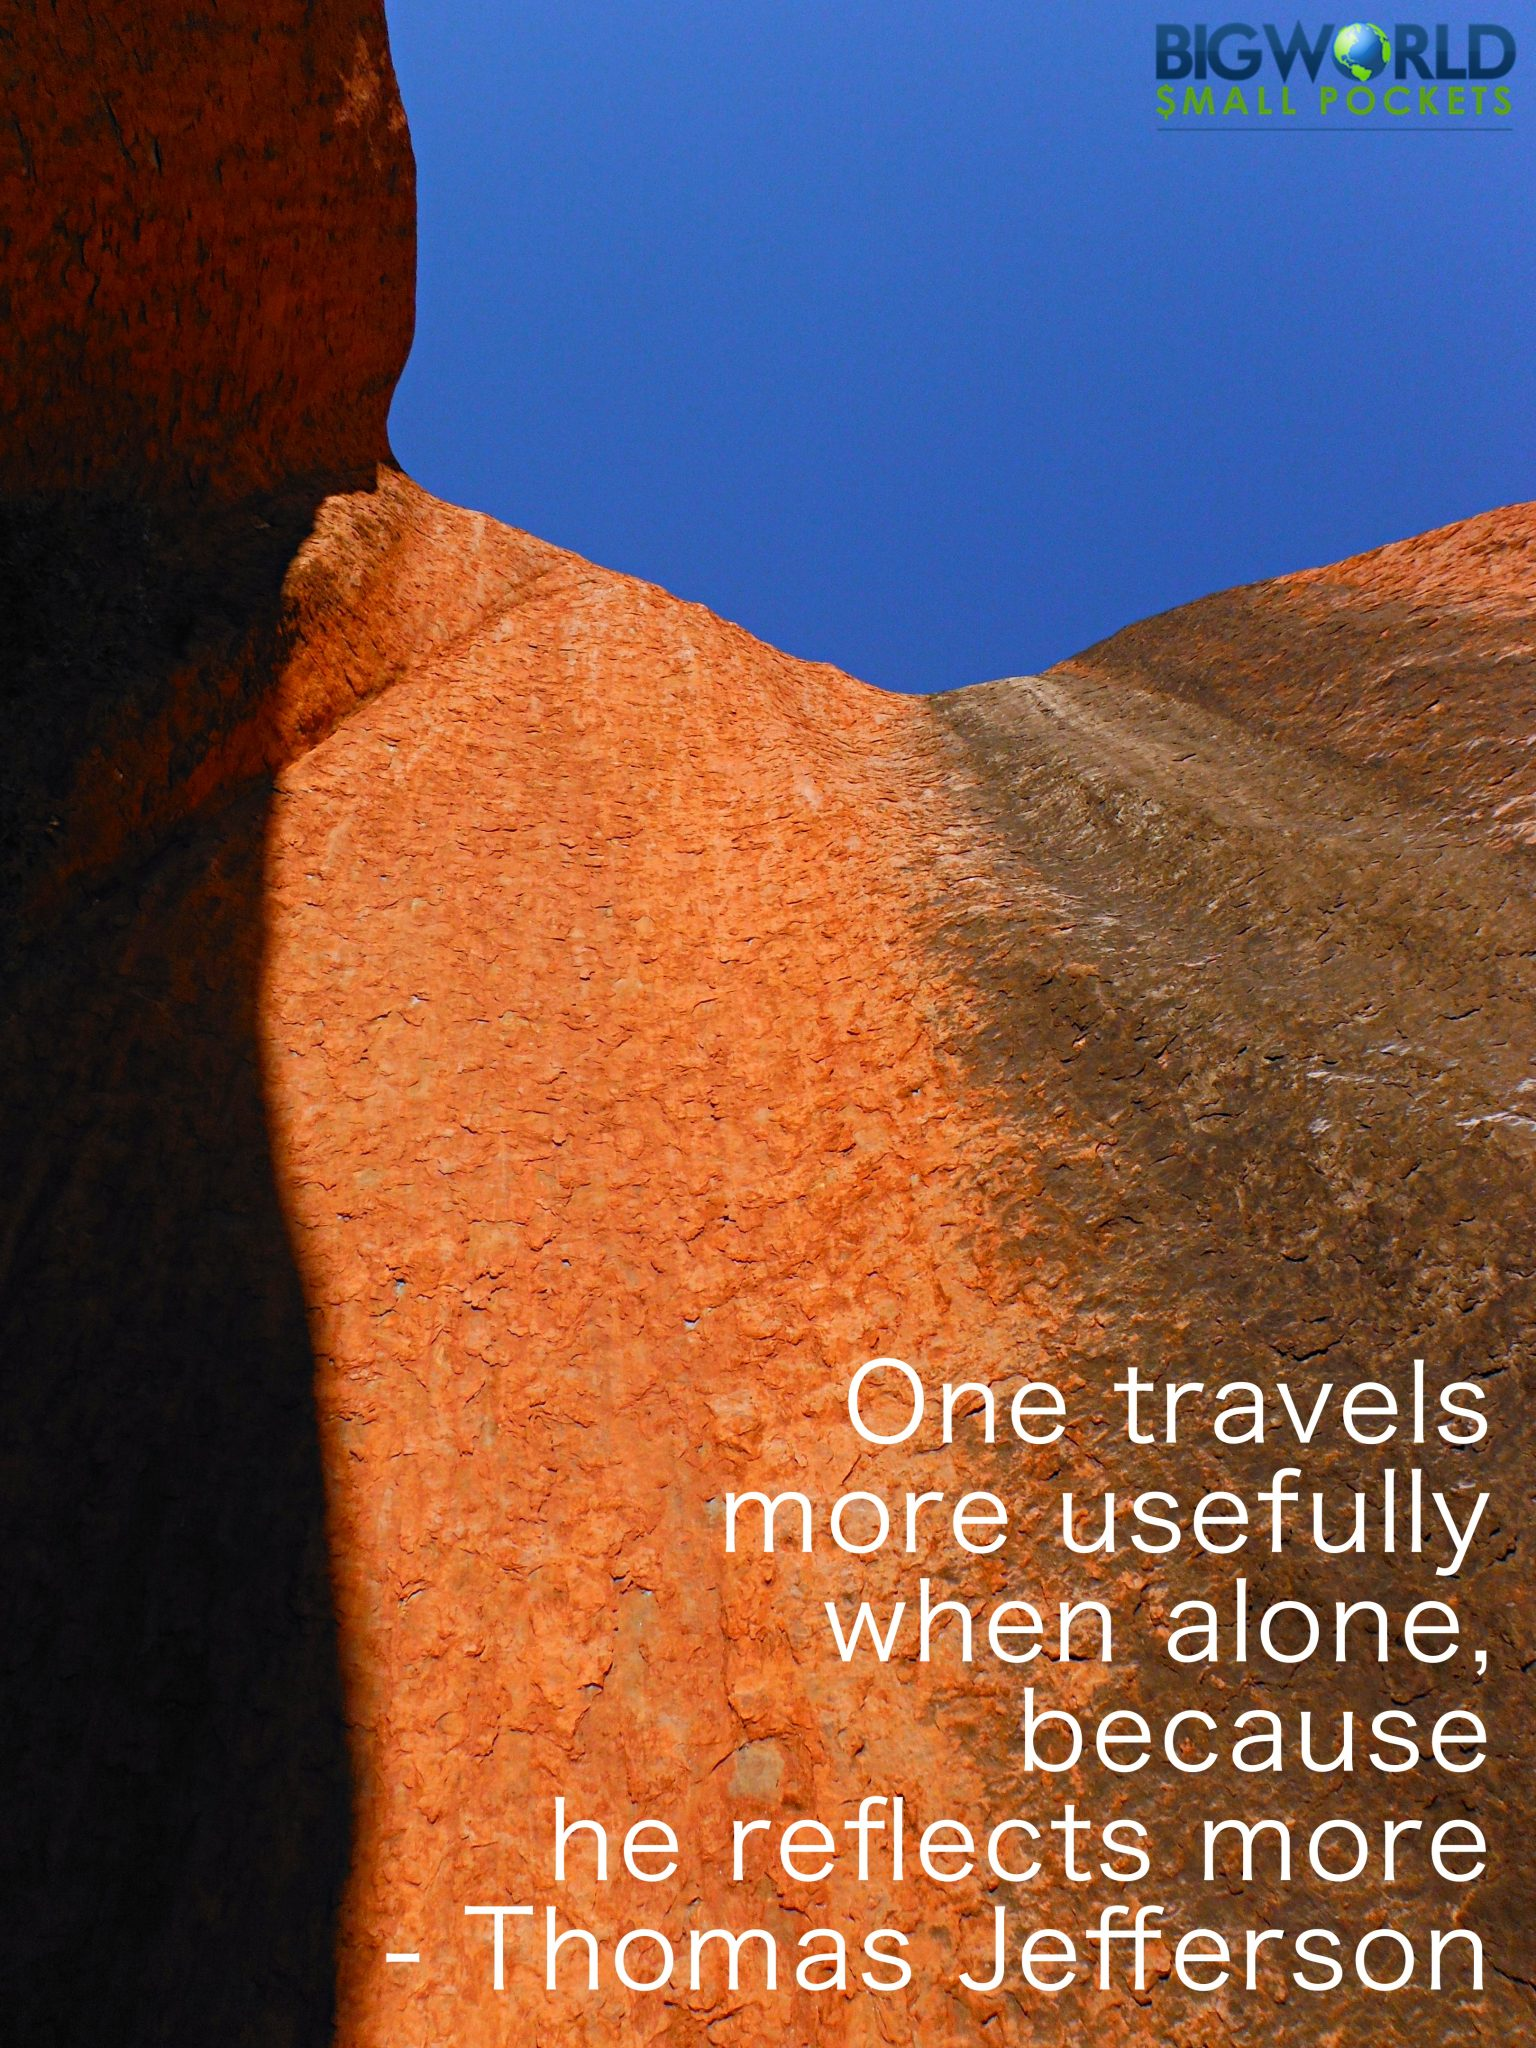 One travels more usefully when alone, because he reflects more - Thomas Jefferson